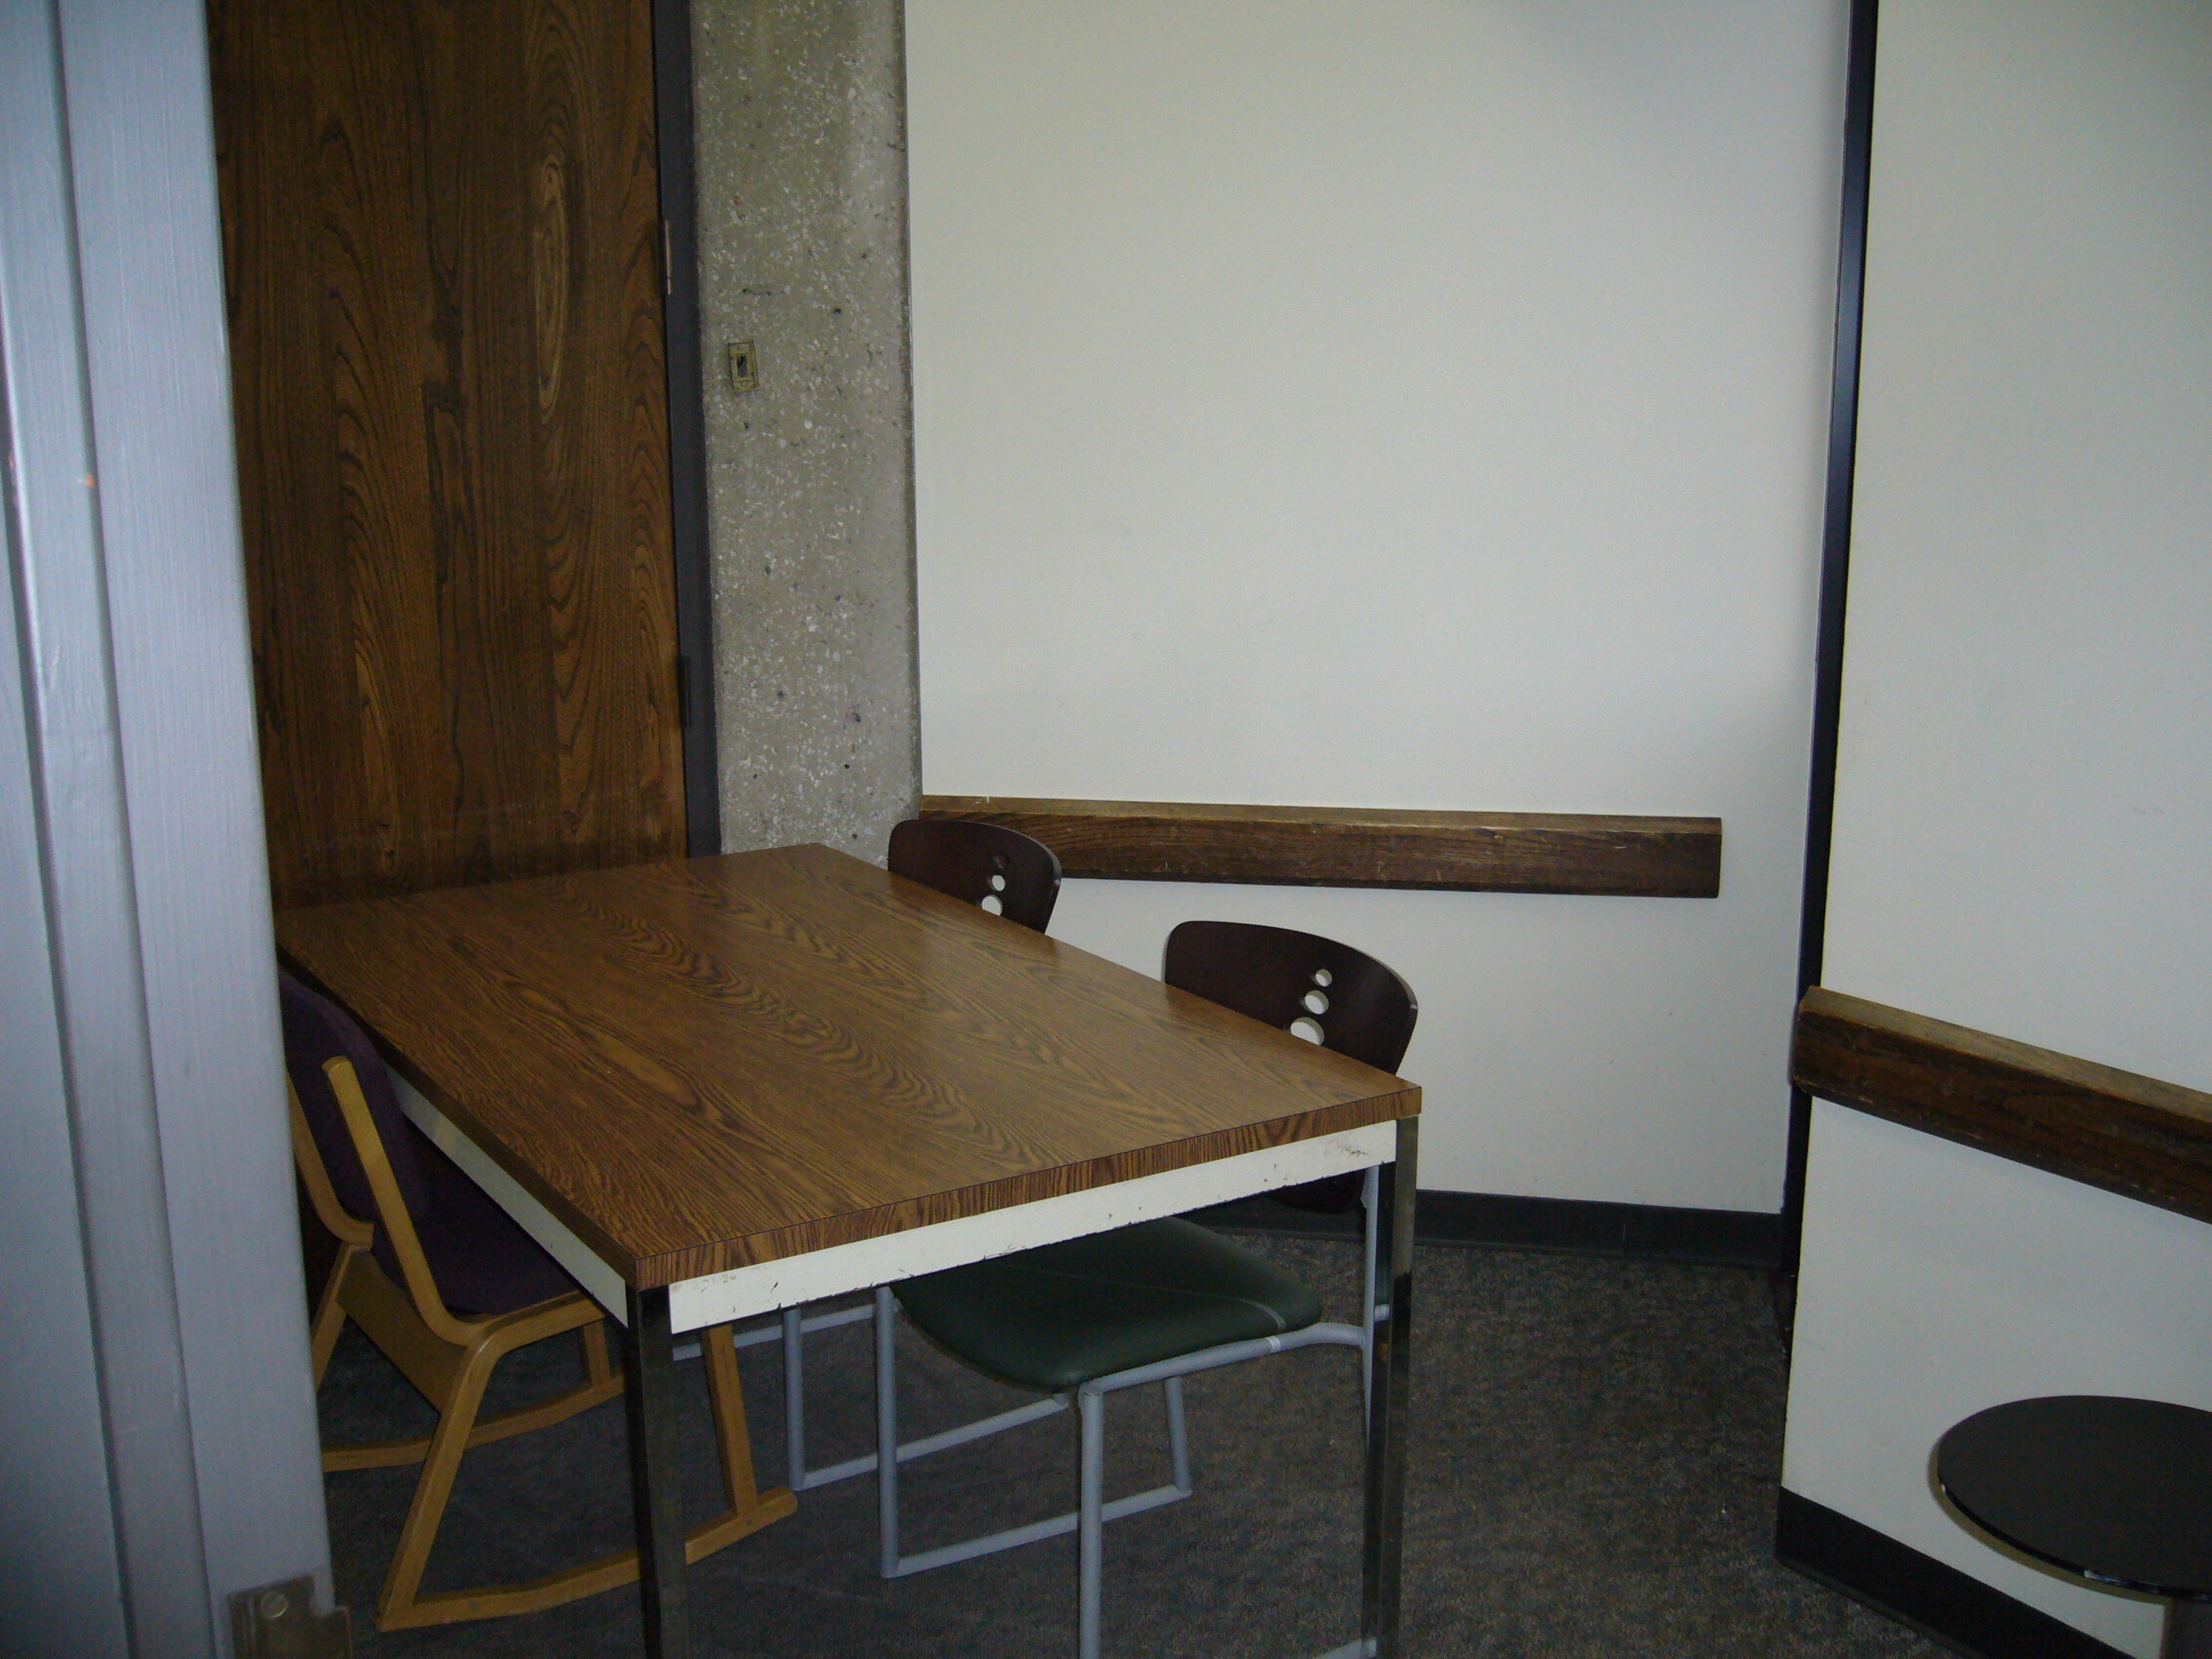 Bierce Library Room 377A